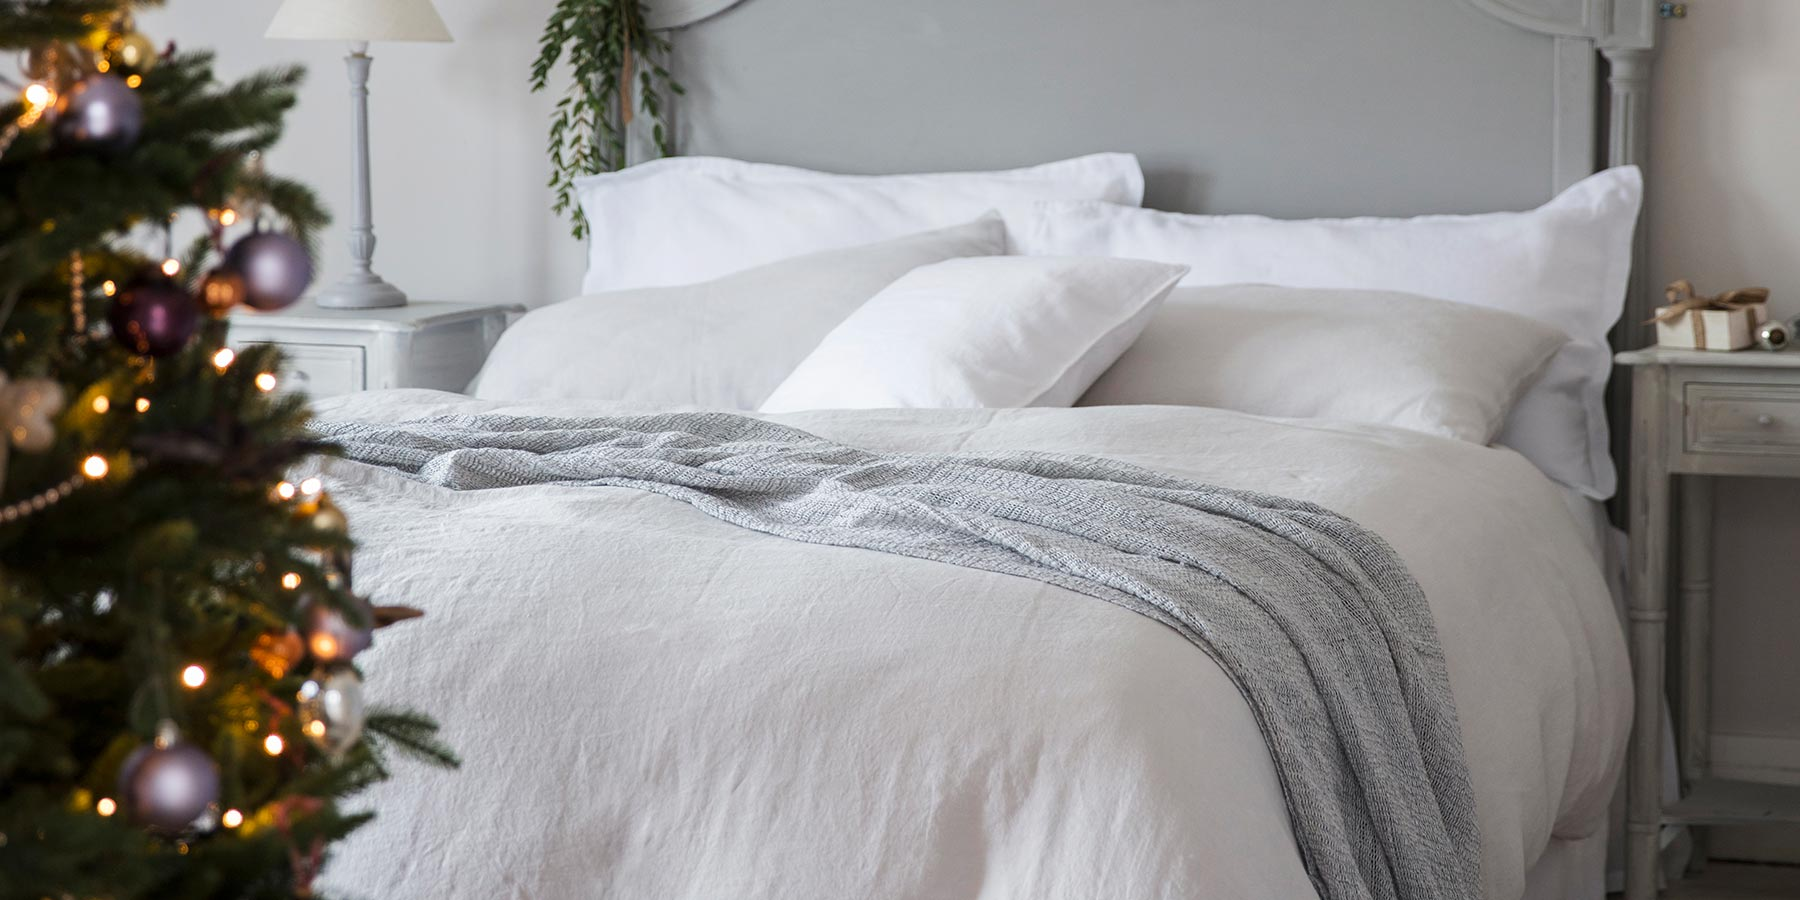 Dove Grey and White Bed Linen with Christmas Tree